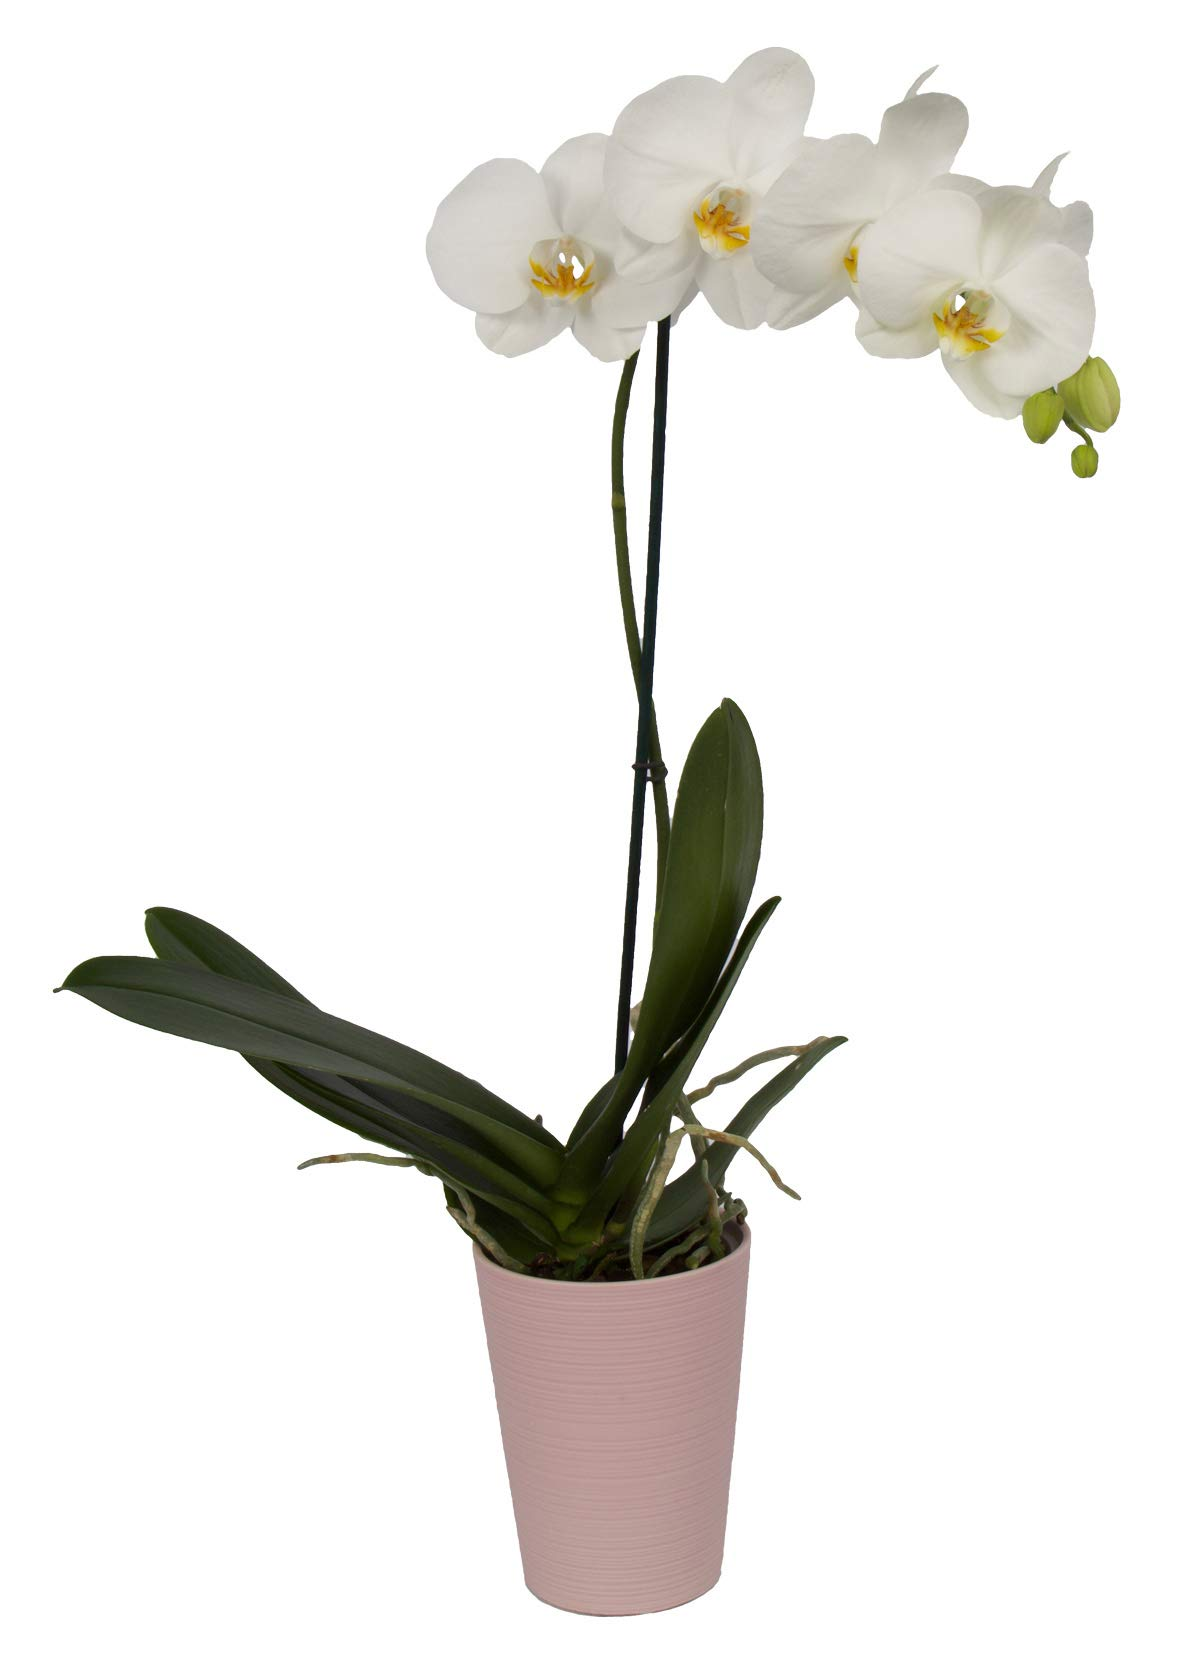 Color Orchids AMZ1101DP1W Live Blooming Single Stem Phalaenopsis Orchid Plant in Ceramic Pot, 20''-24'' Tall, White Blooms